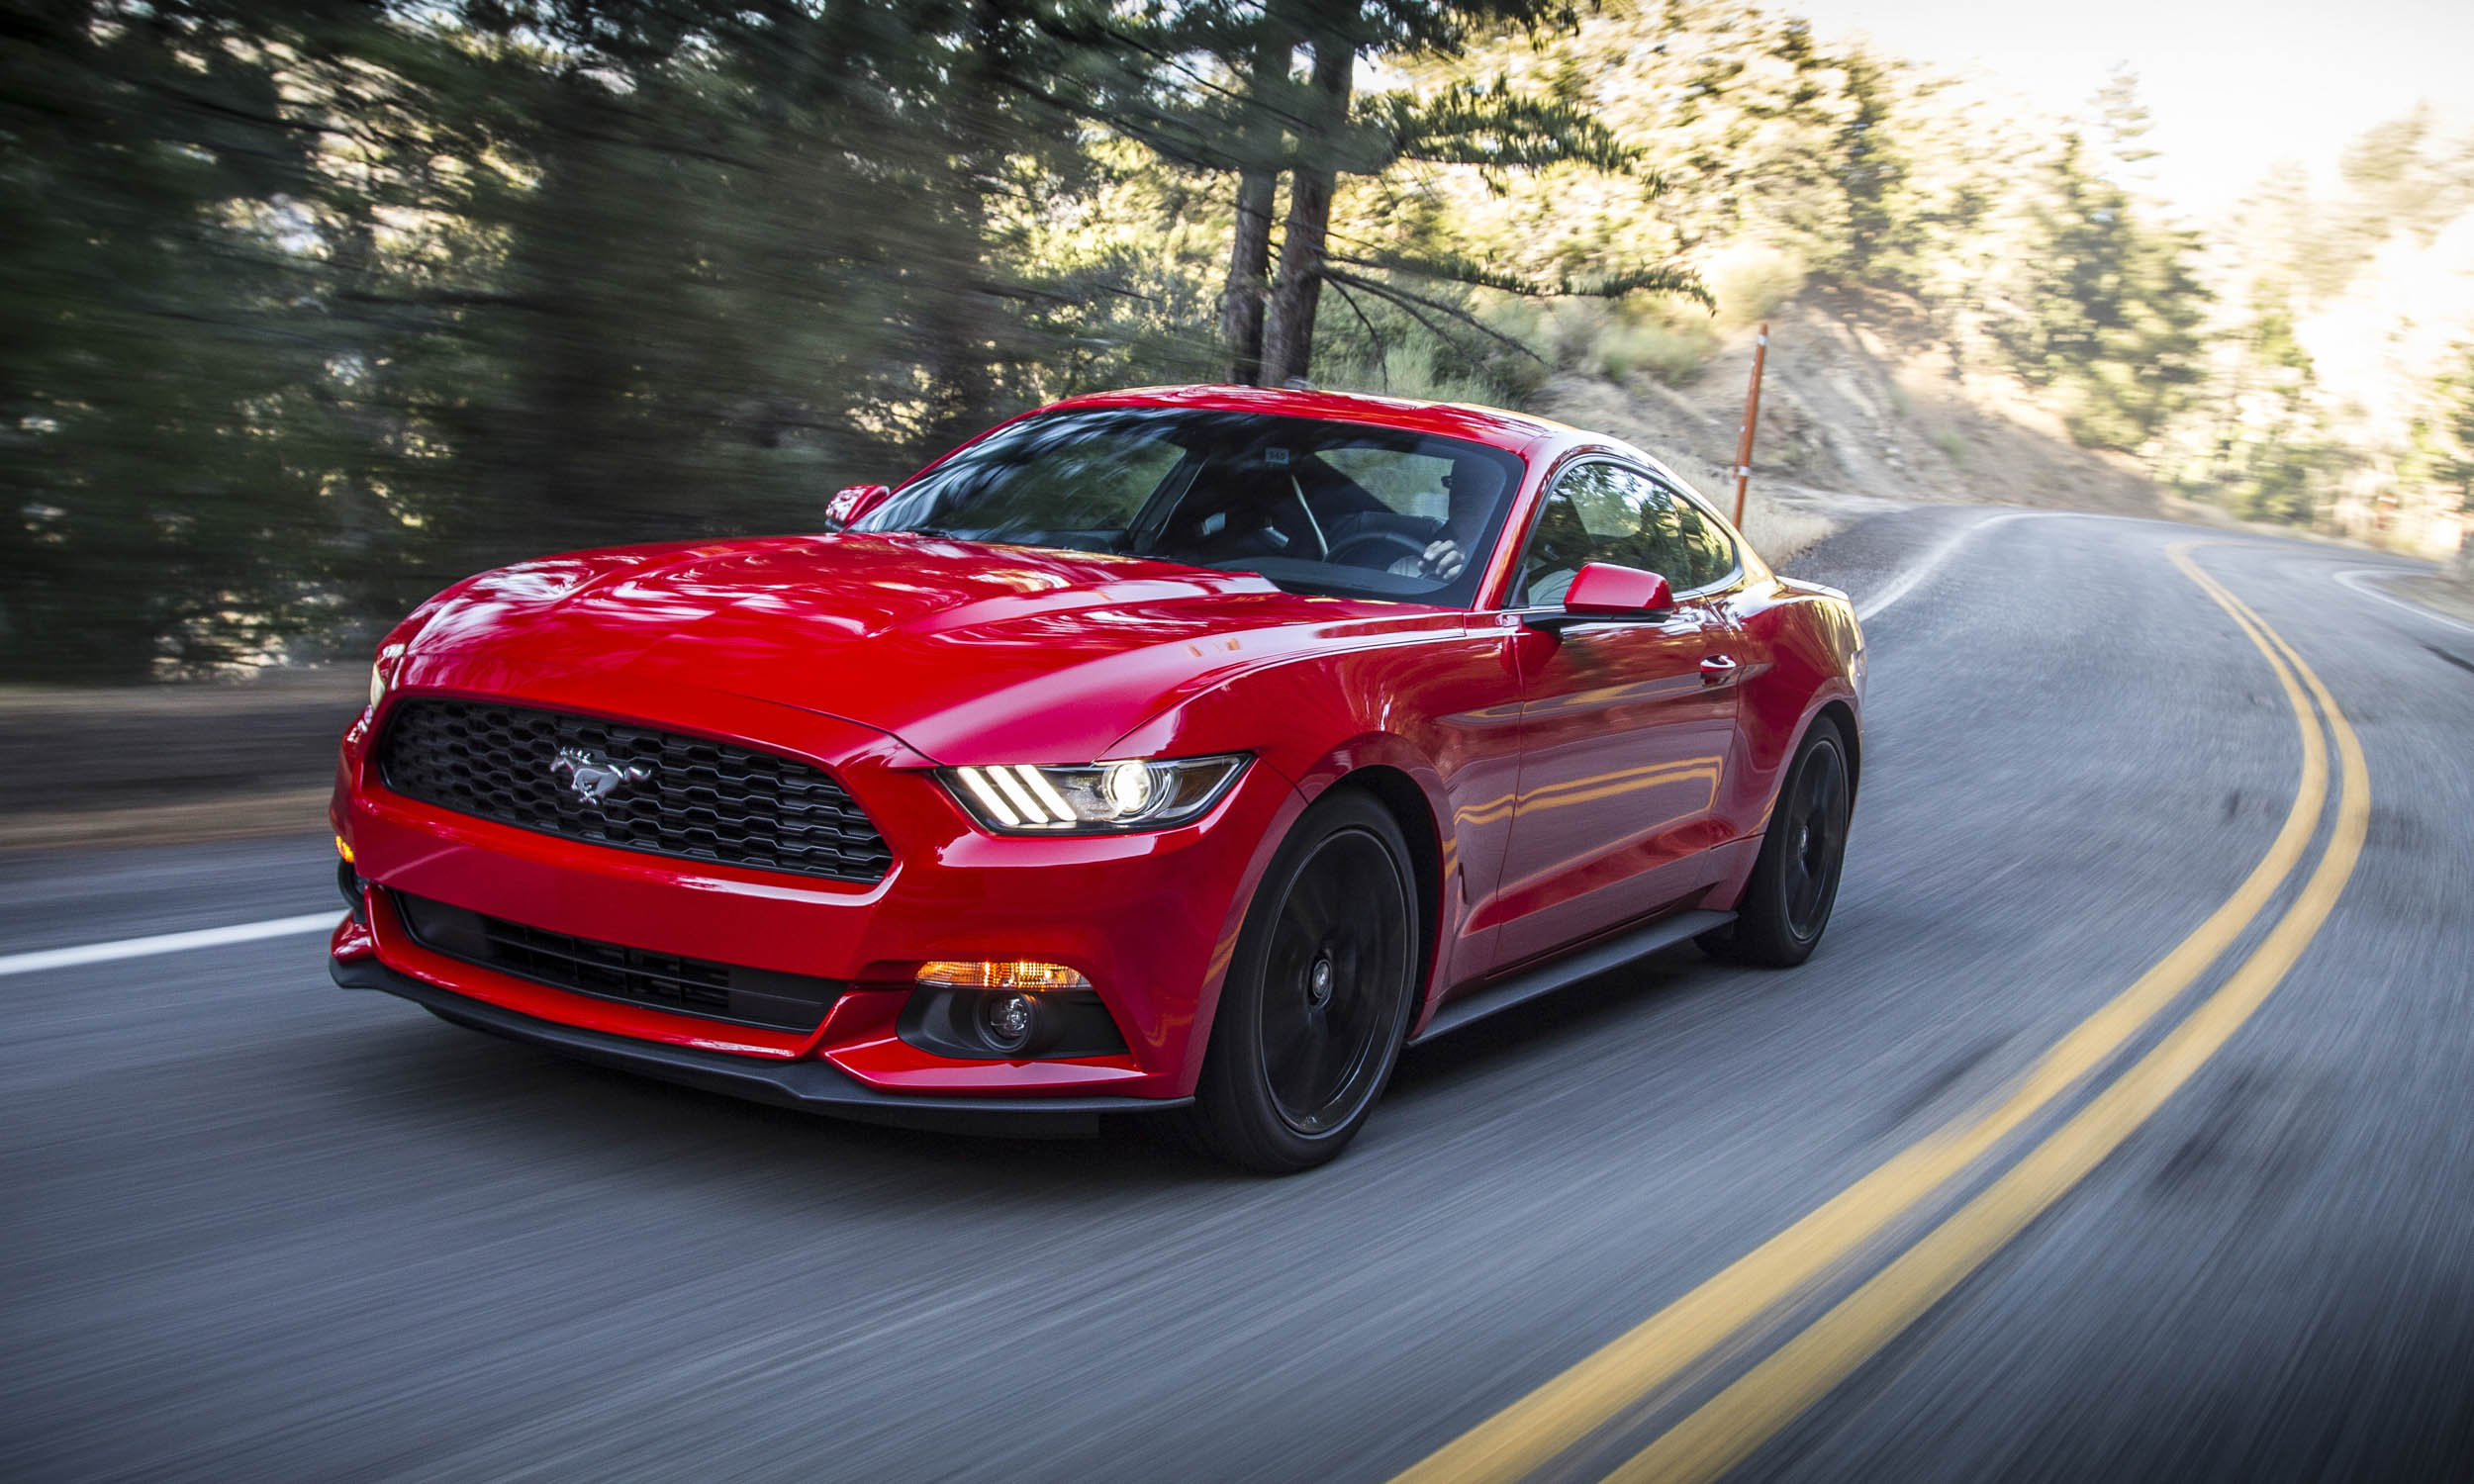 Most popular car colors 2015 - Ford Motor Company